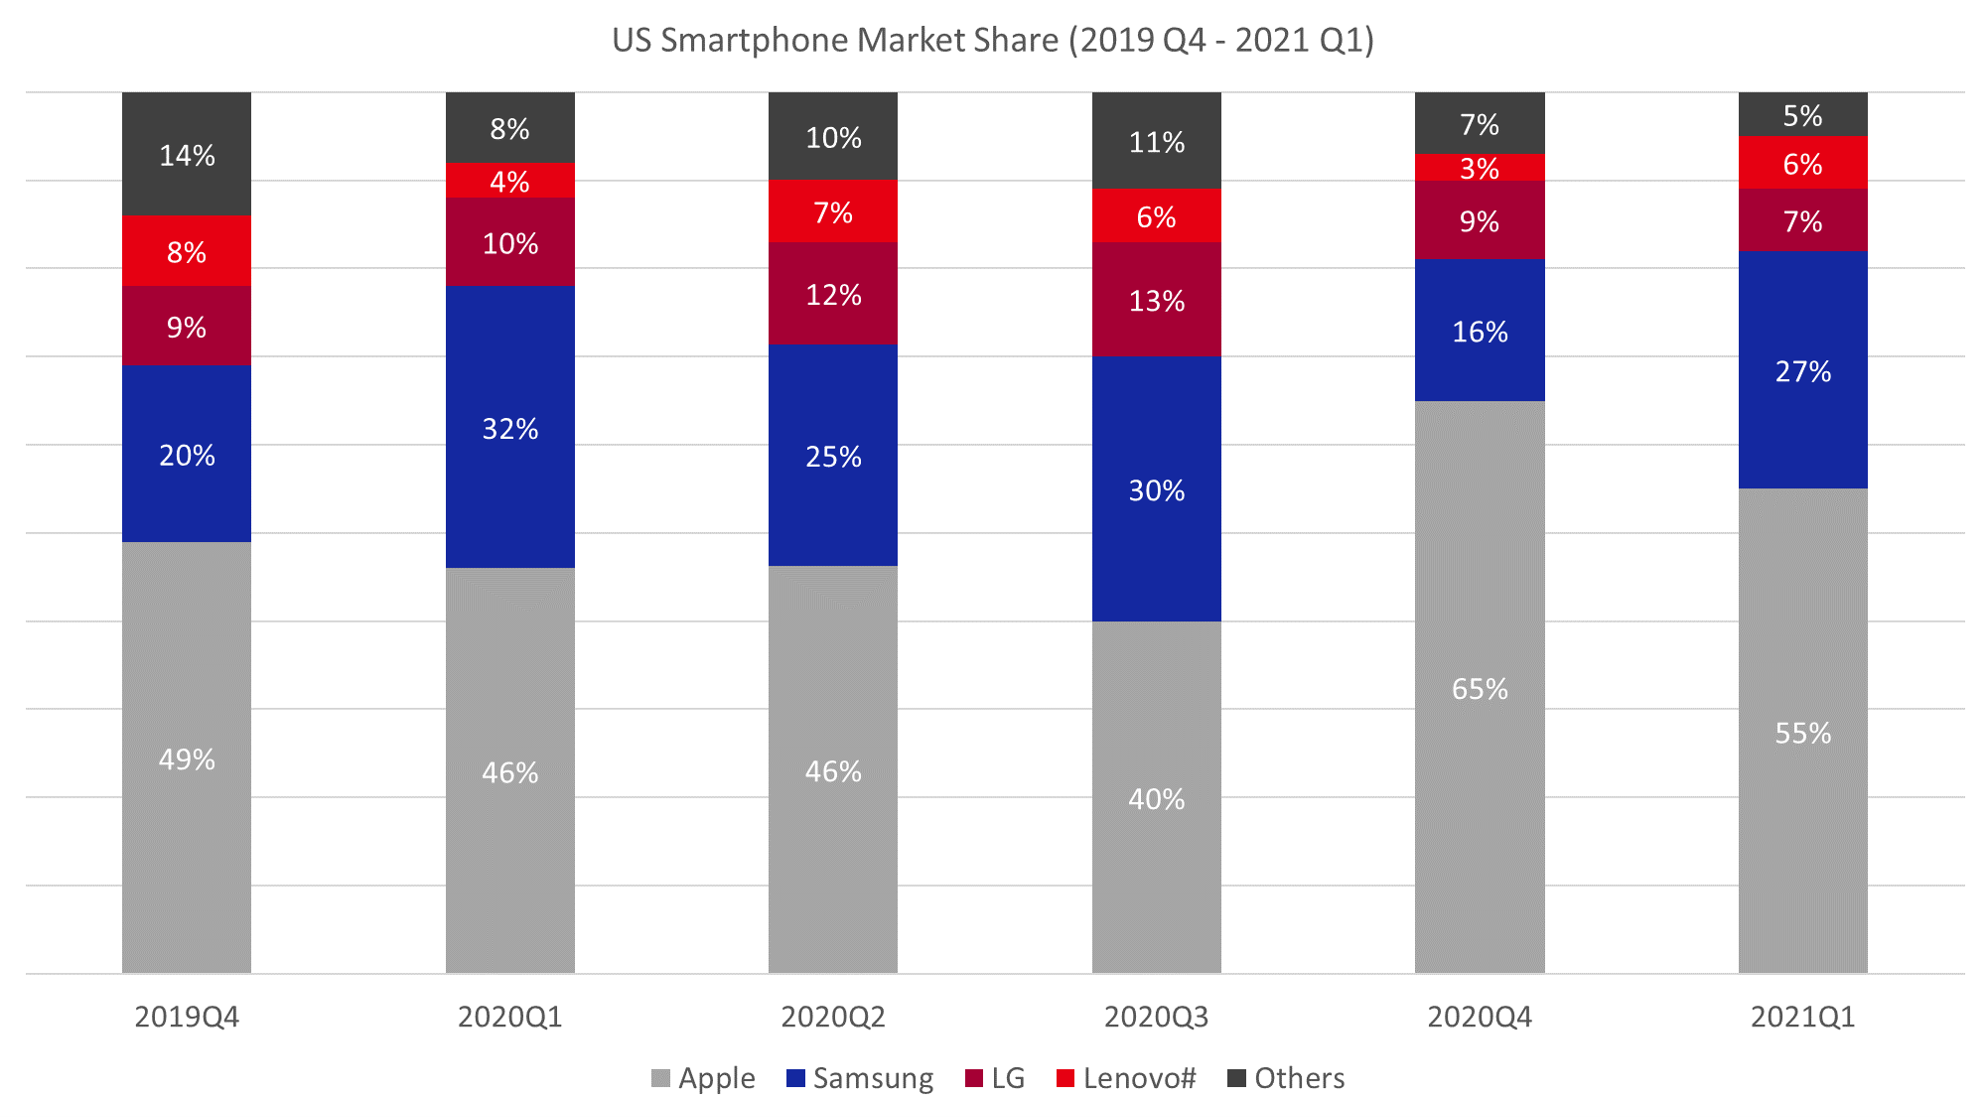 Counterpoint-Research-US-Smartphone-Quarterly-Market-Data-2019Q4-2021Q1